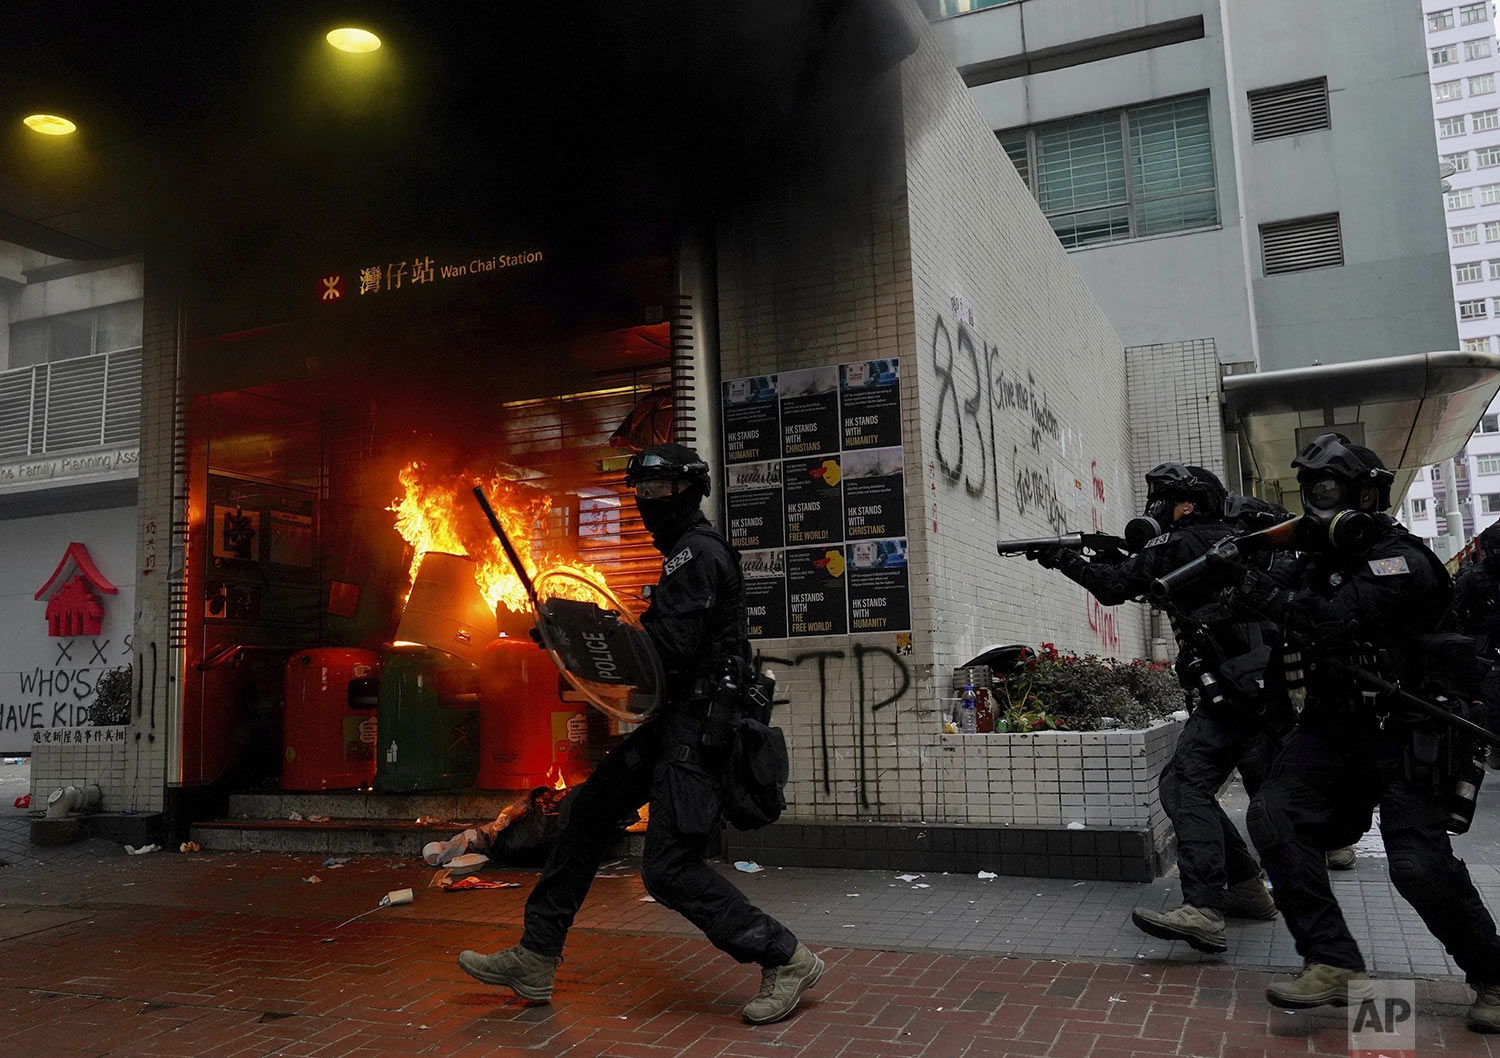 Riot police arrive after protestors vandalized an area in Hong Kong, Sunday, Sept. 29, 2019. (AP Photo/Vincent Yu)